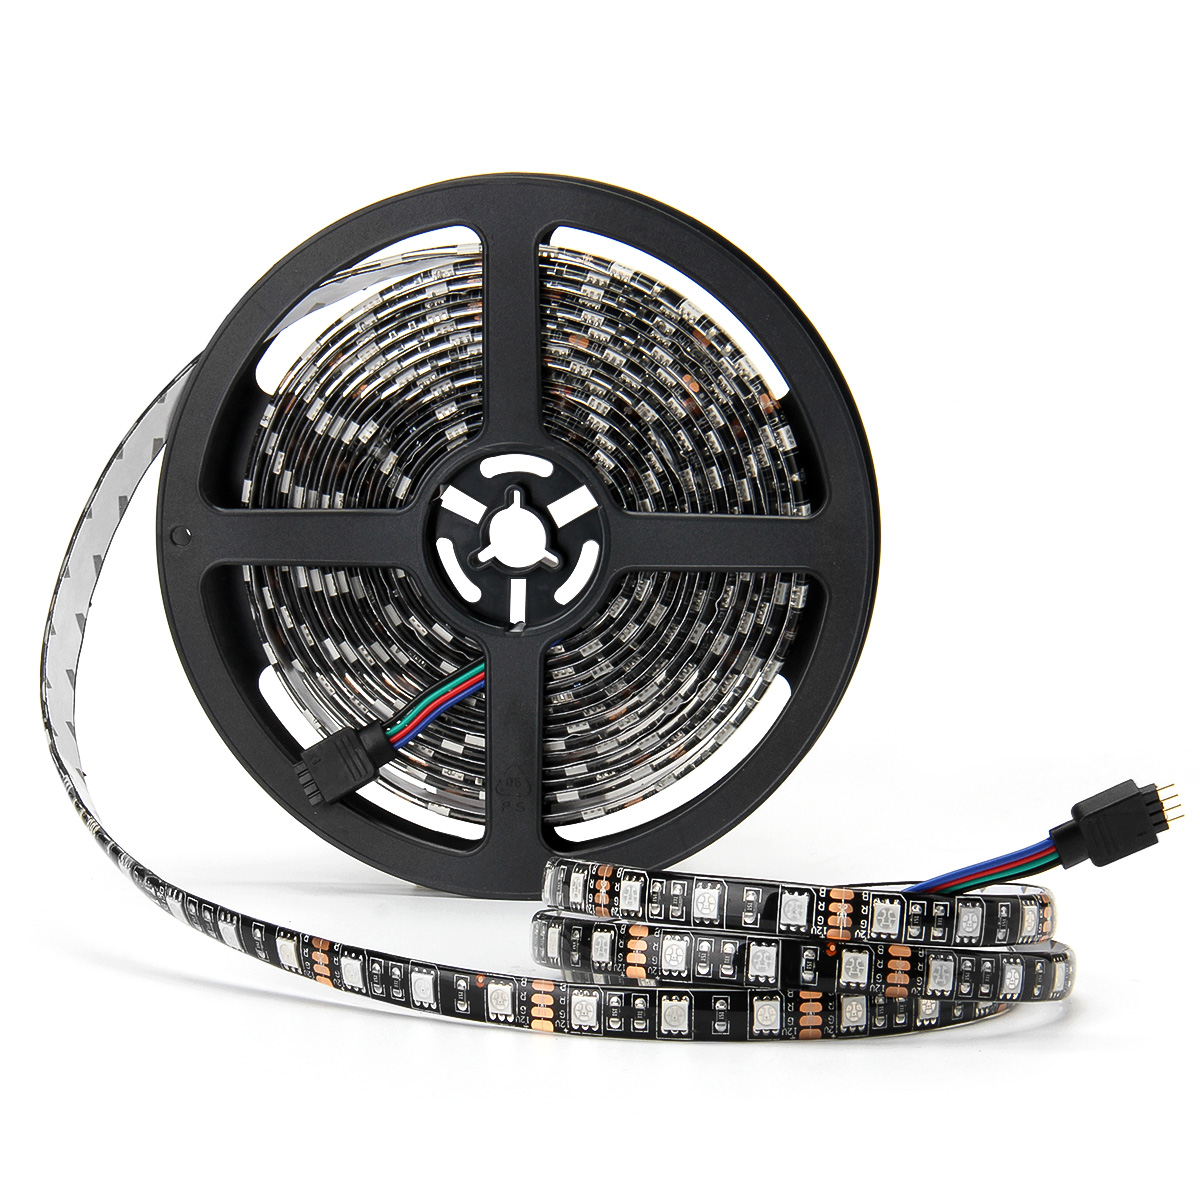 SUPERNIGHT Black PCB 5050 RGB LED Strip Lights Waterproof IP65 Flexible Color Changing Lighting 16.4ft 5M 300 Leds LED Rope Light 60Leds/M